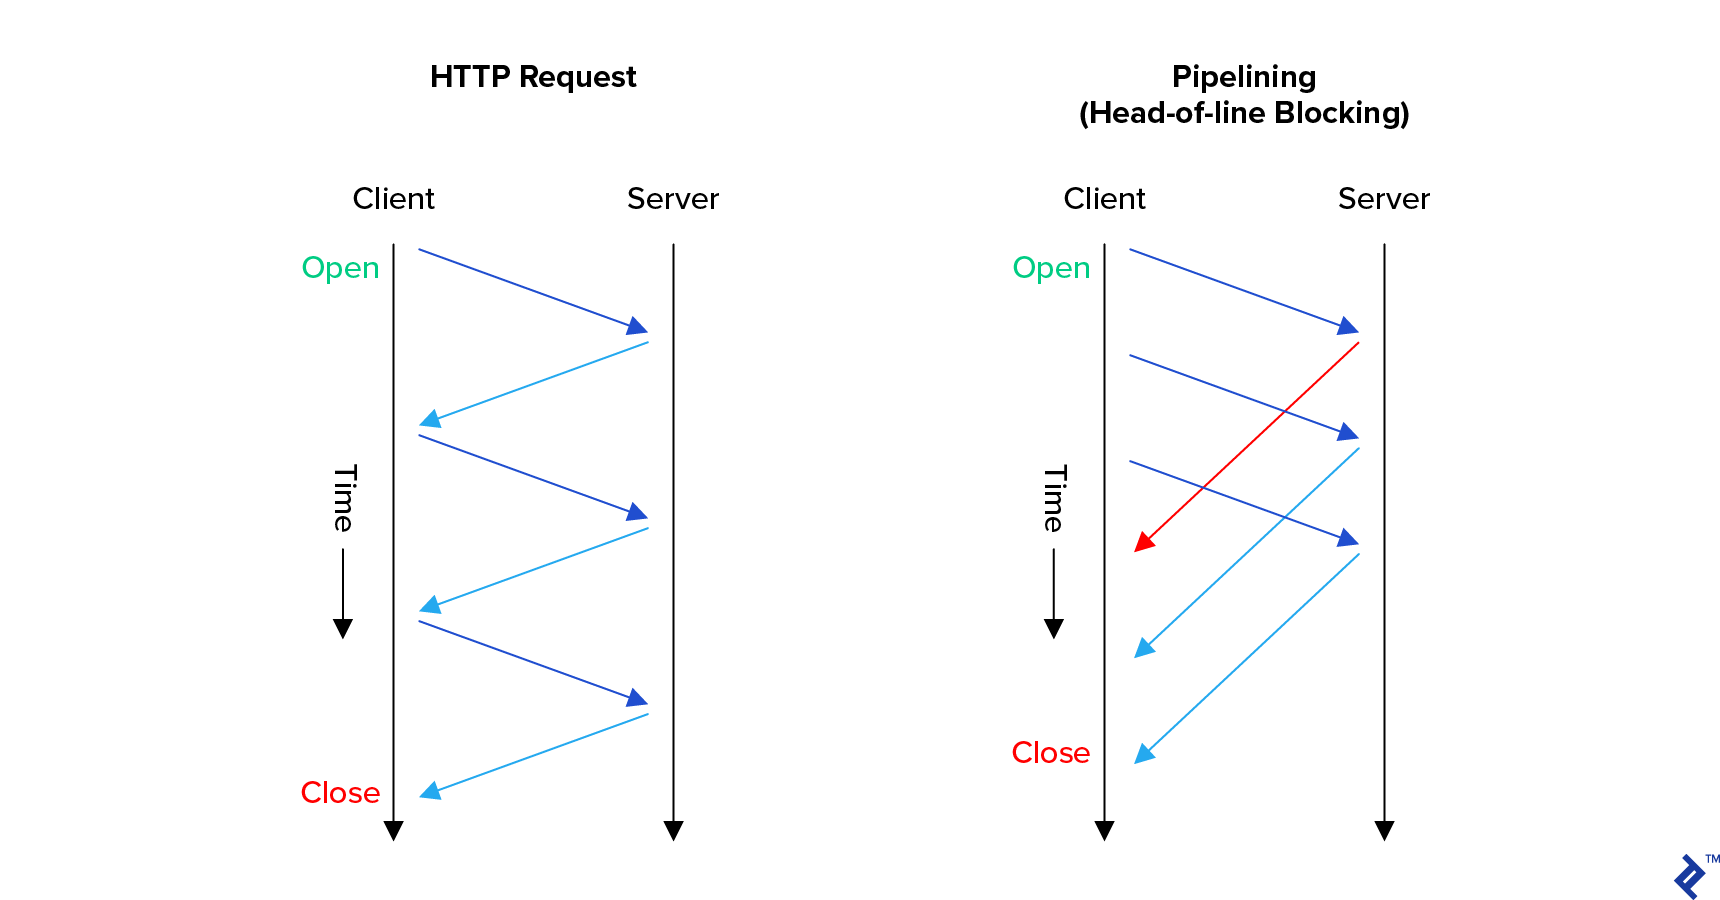 HTTP/1.1 pipelining compared with a regular HTTP request. The regular request has three request-response round trips done entirely in serial. The pipelining method is somewhat faster overall, in that the client sends three requests in a row without waiting for a response between them. But it still suffers from the head-of-line blocking problem, because responses must be sent in order.